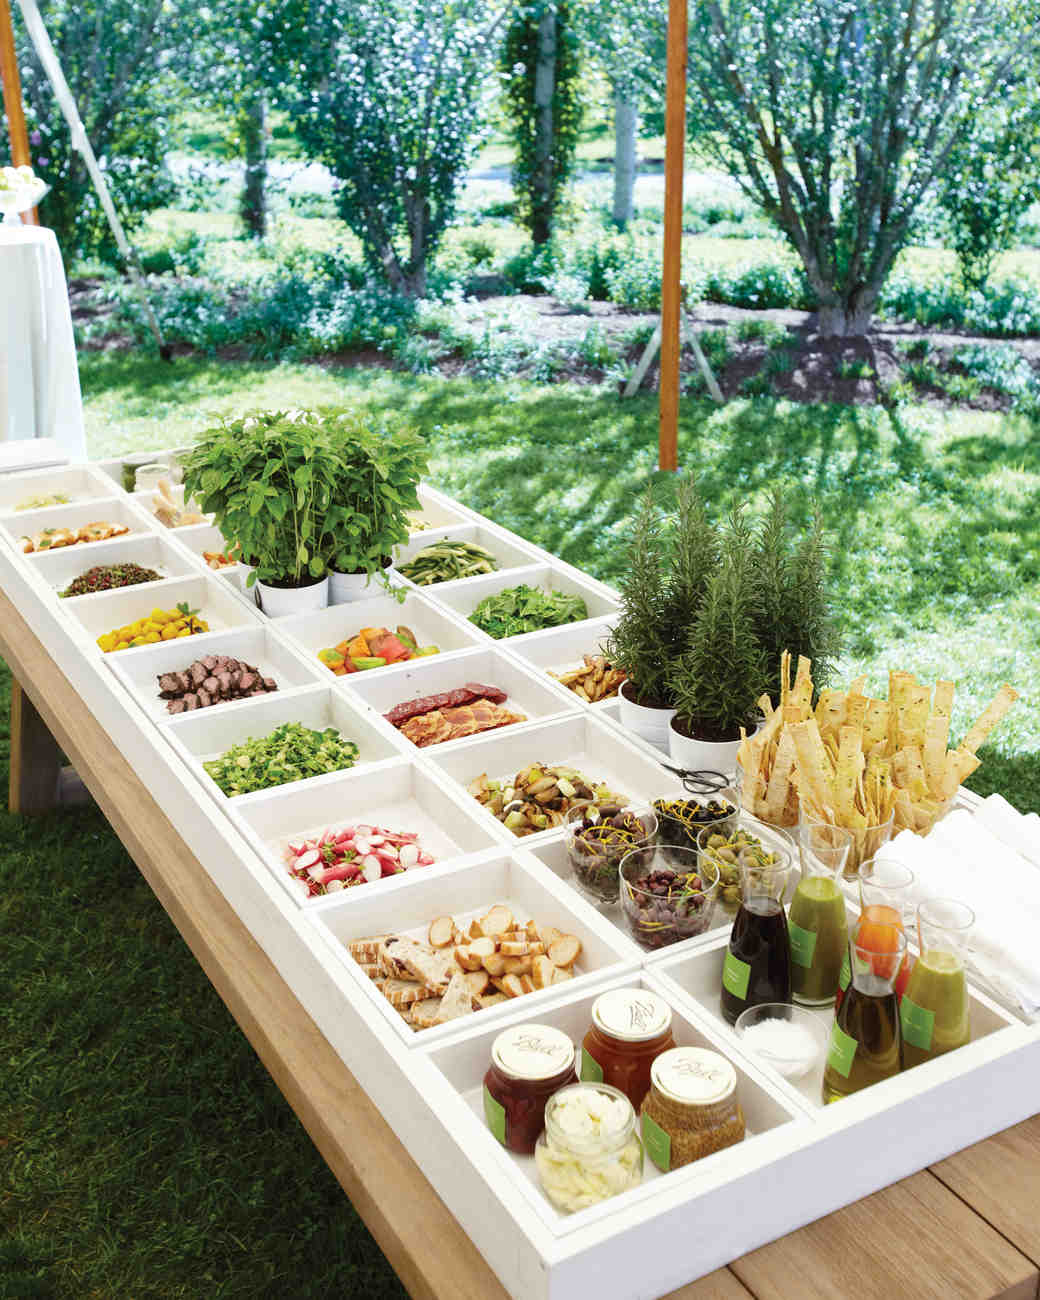 Buffet Food For Wedding: 16 Things You Need To Know To Pull Off An Outdoor Wedding